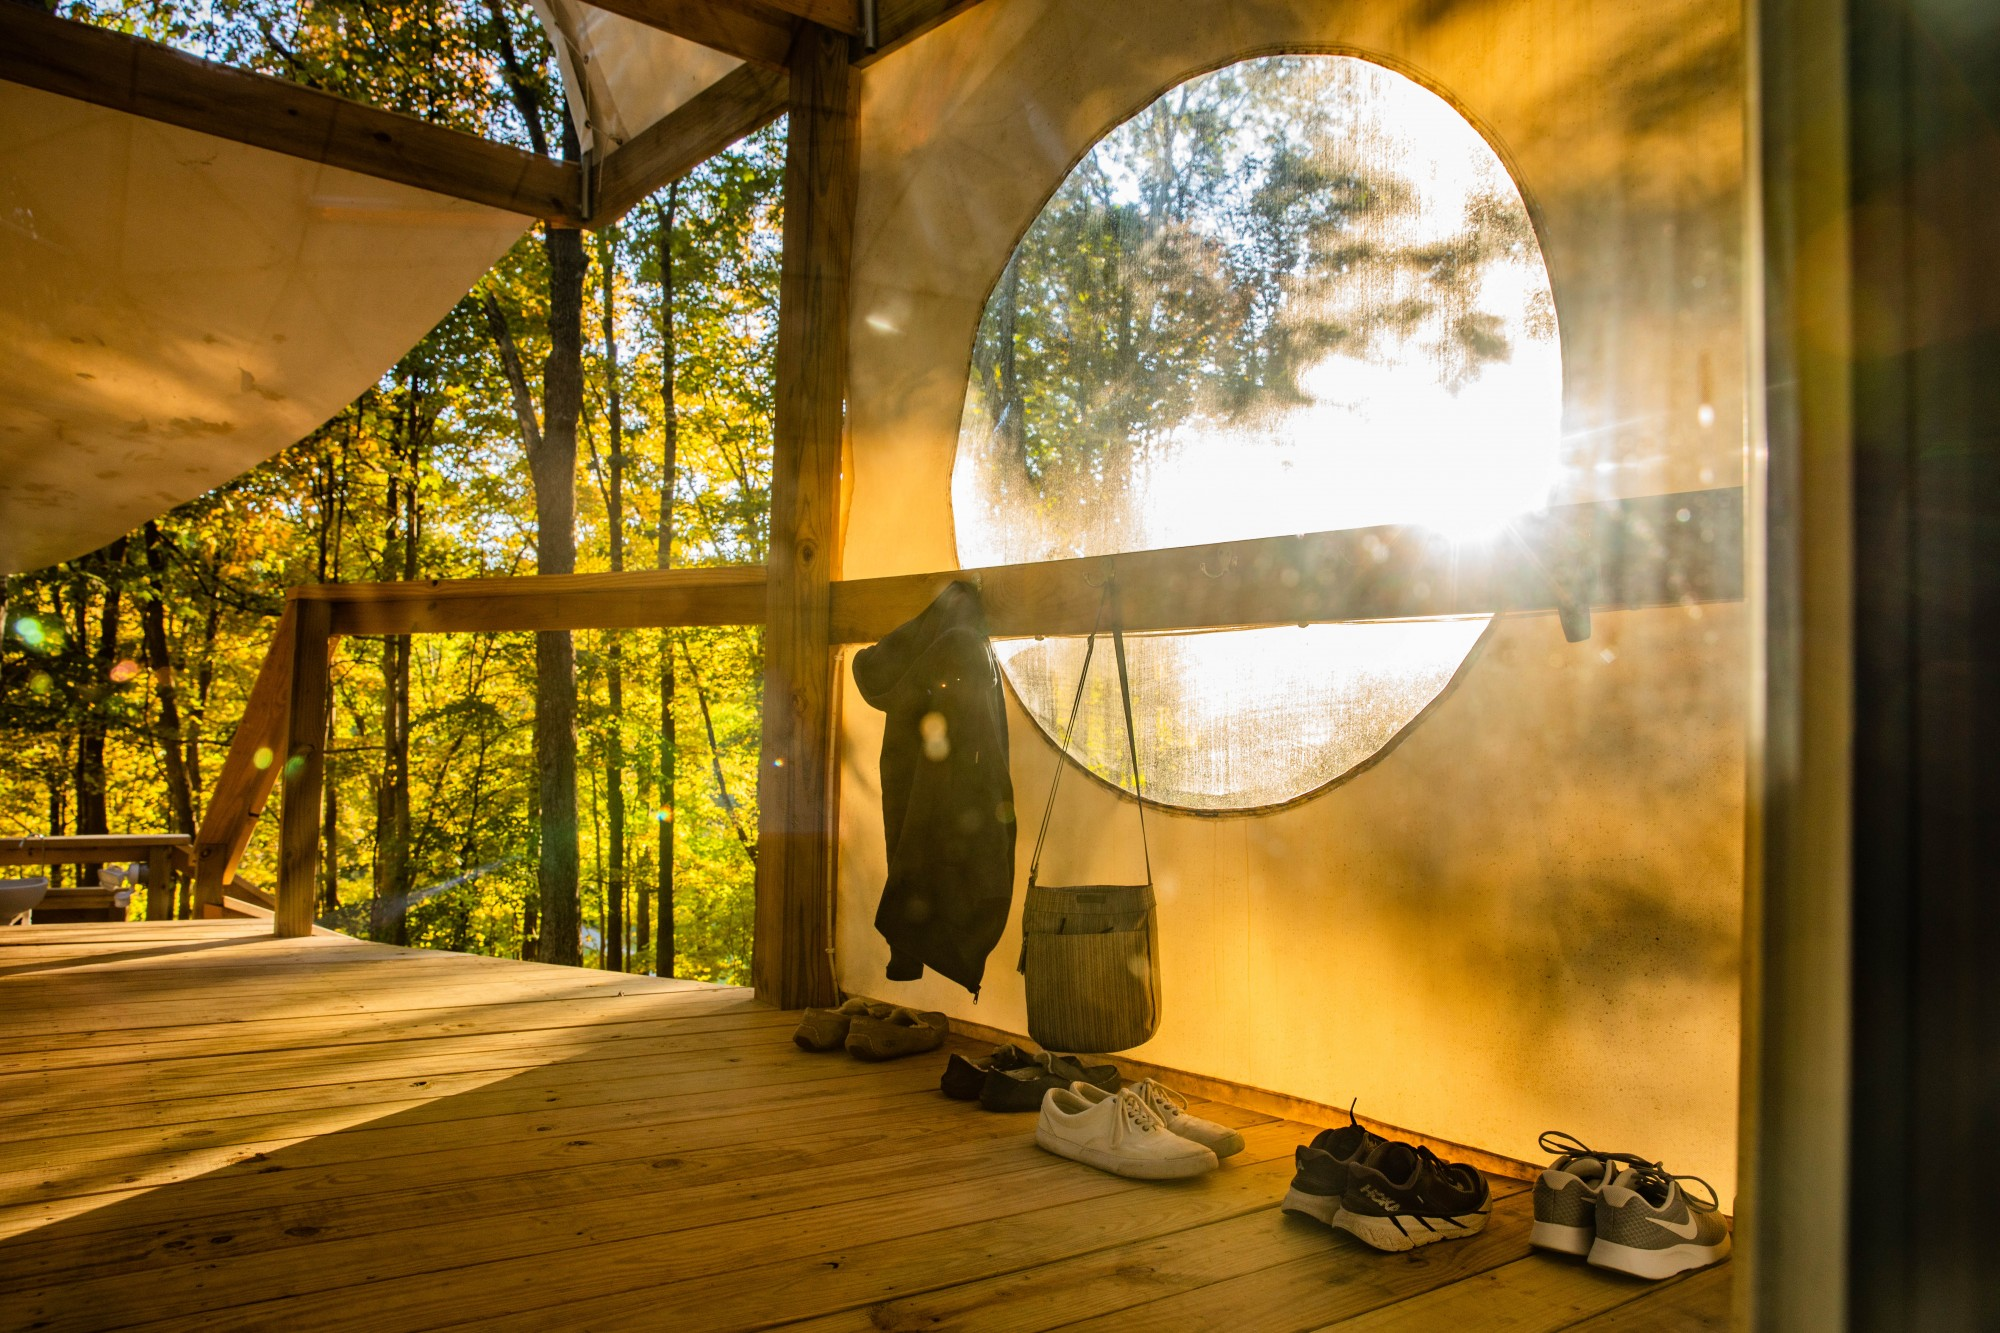 The shoes and personal belongings of students participating in the hot power yoga class at Geode Yoga + Fitness line the exterior of the dome in the dense forests of Chillicothe, Ohio. on Monday, Oct. 5, 2020.